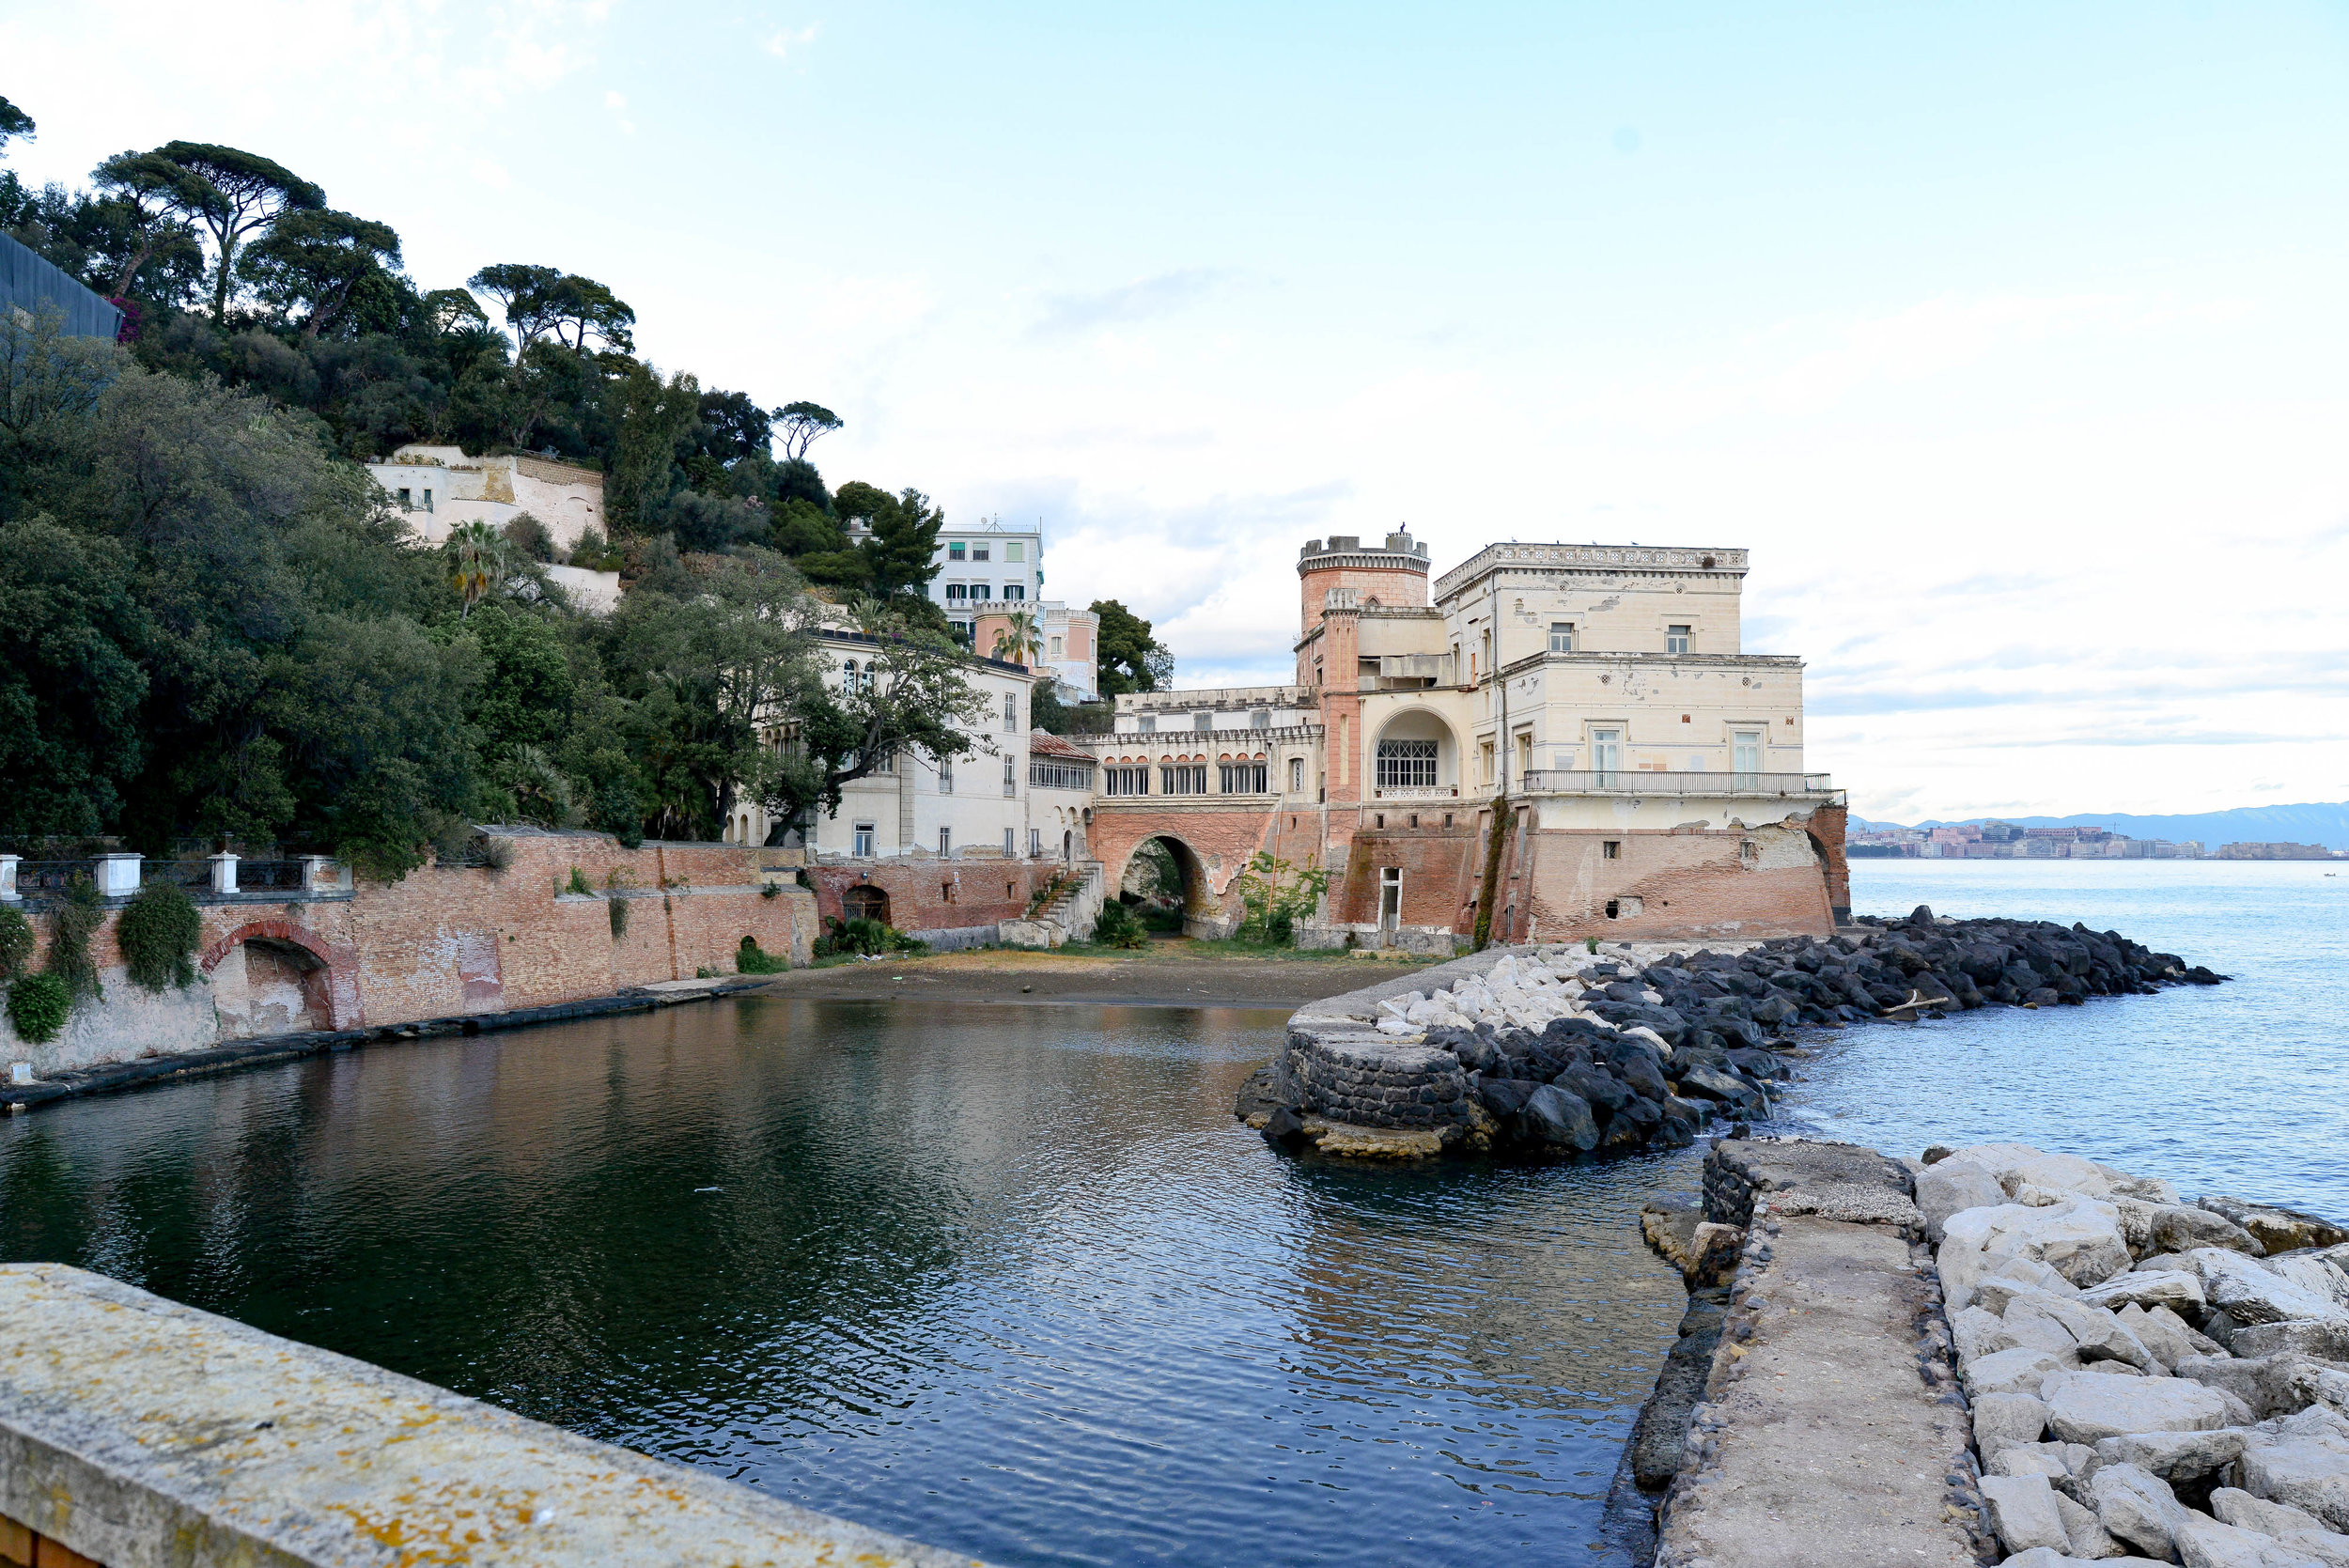 View from the Jetty looking up at the villa and guardian tower | Posillipo, Italy | Lauren L Caron © 2018